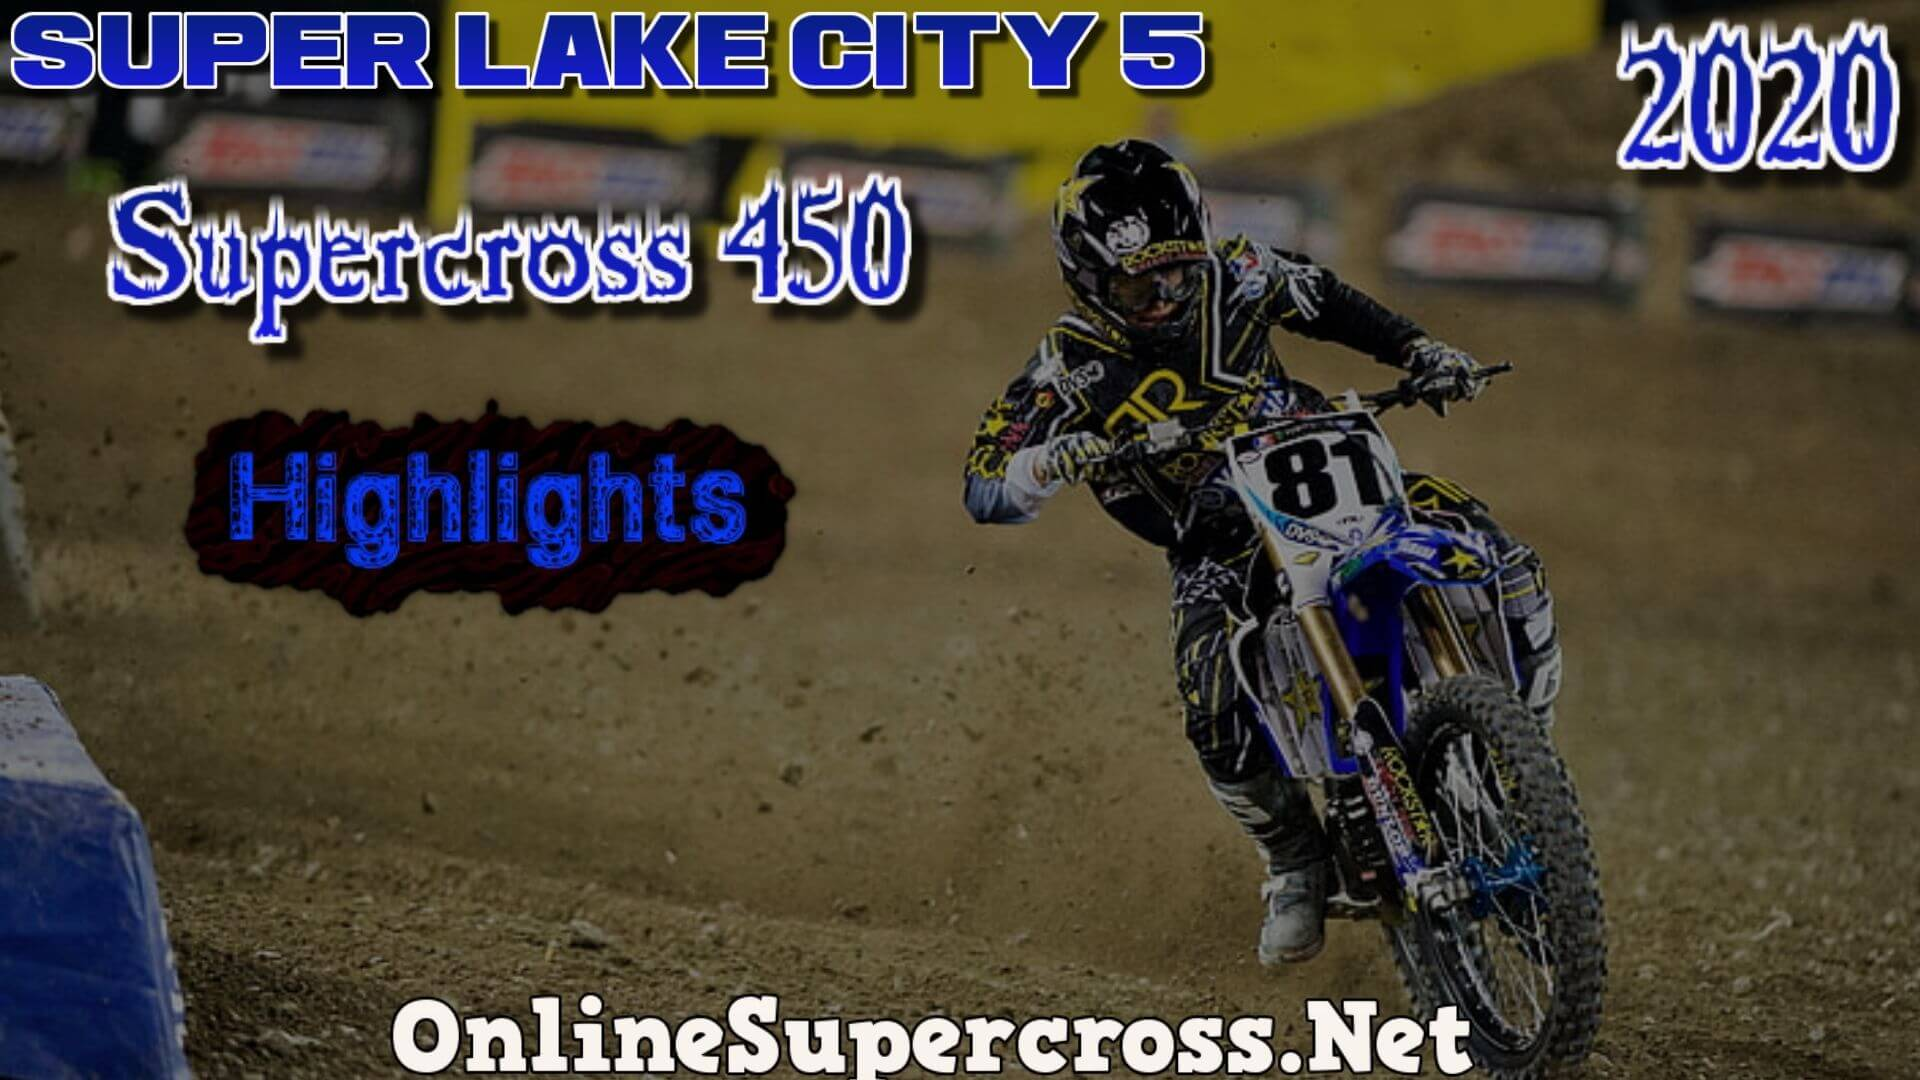 Super Lake City 5 Supercross 450 Highlights 2020